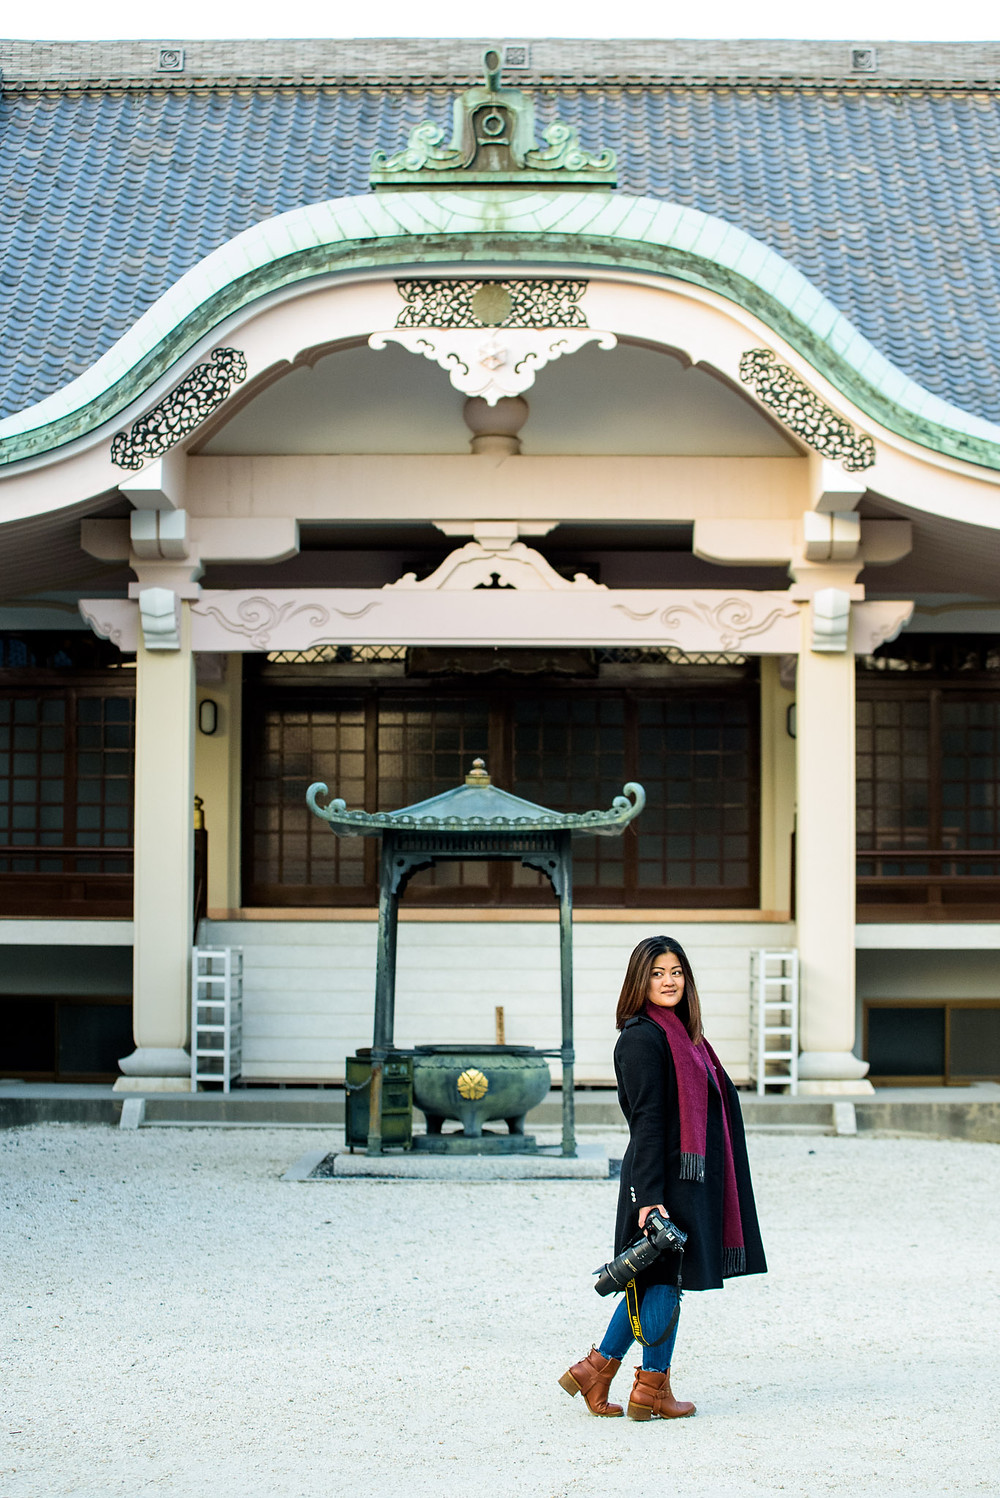 Anna Mae in front of the buddhist temple